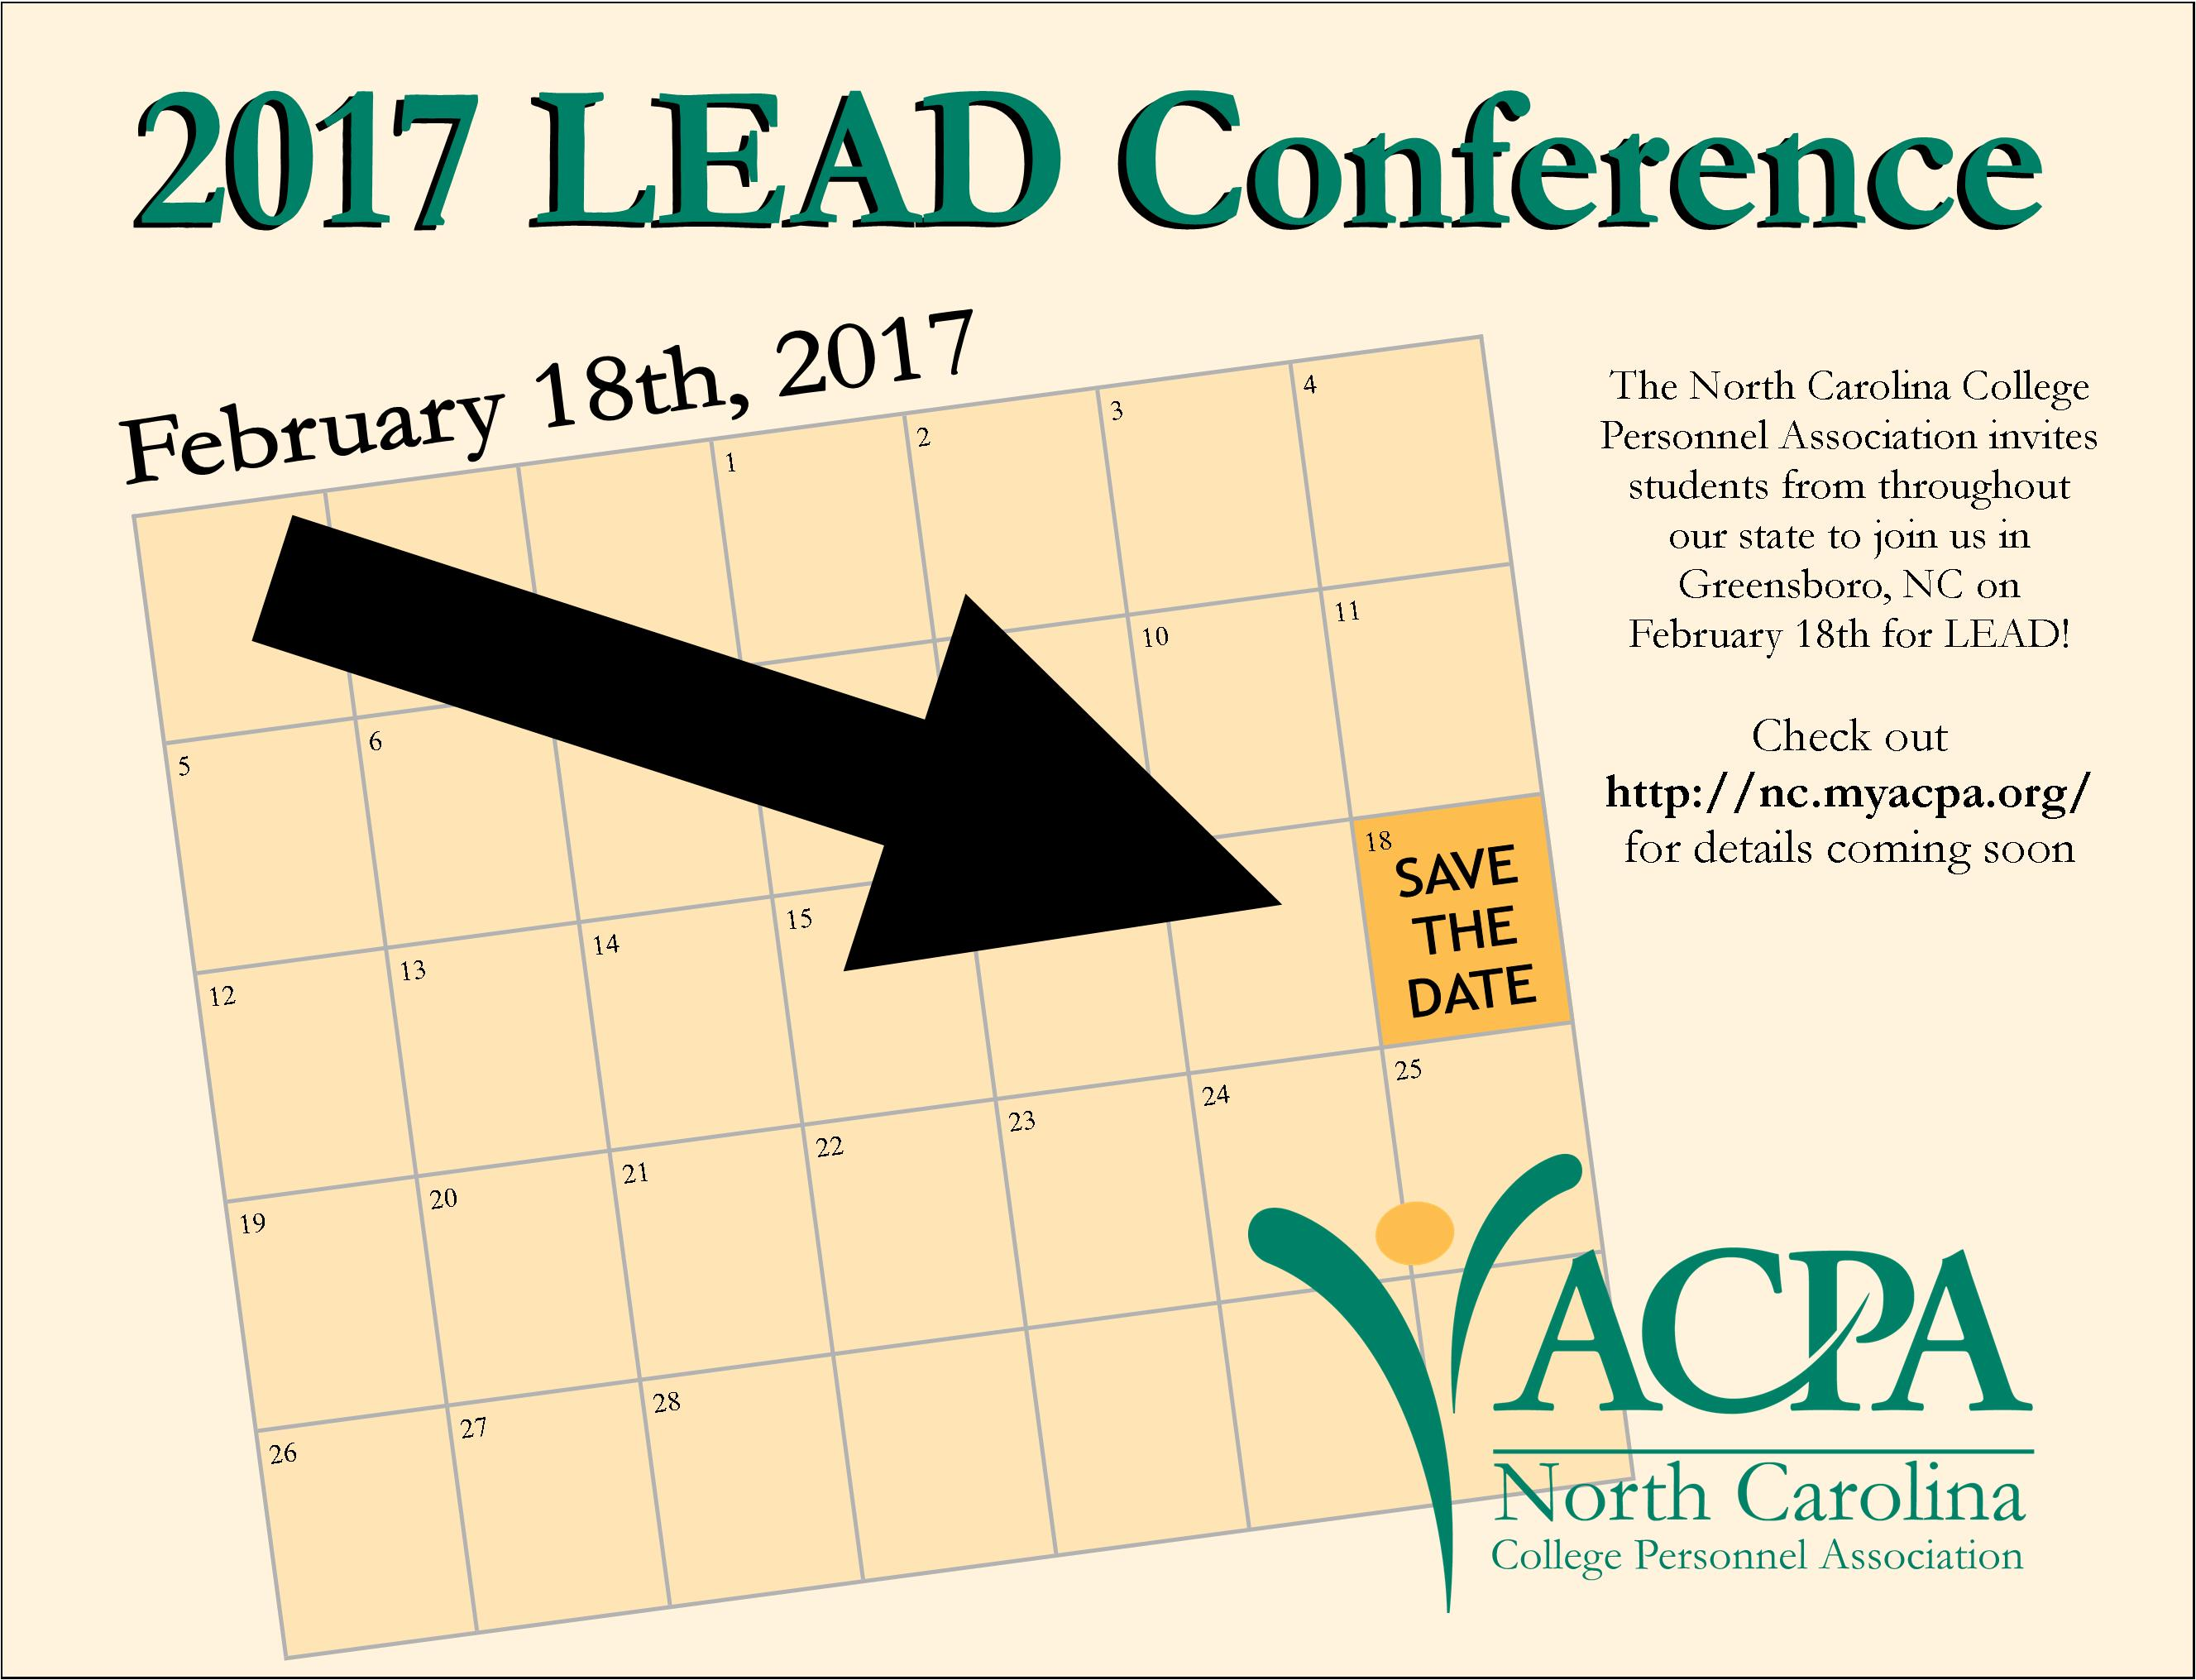 LEAD Conference save the date